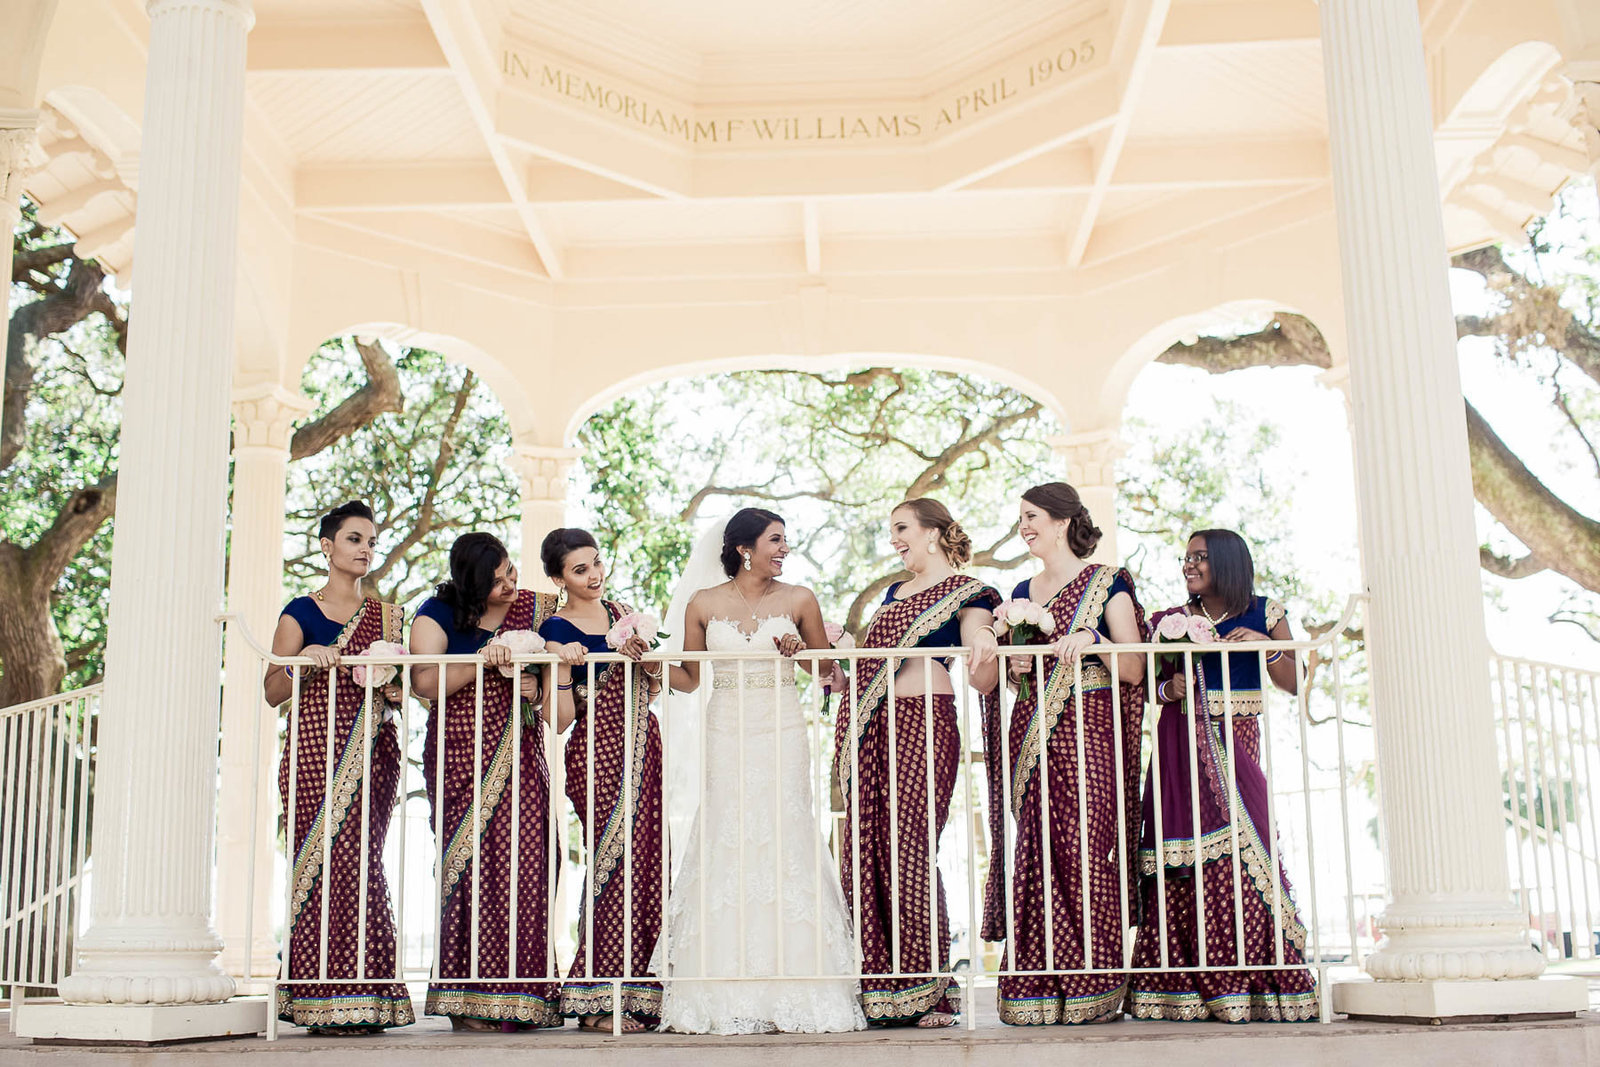 Bride poses with bridesmaids at gazebo of White Point Garden, South Carolina